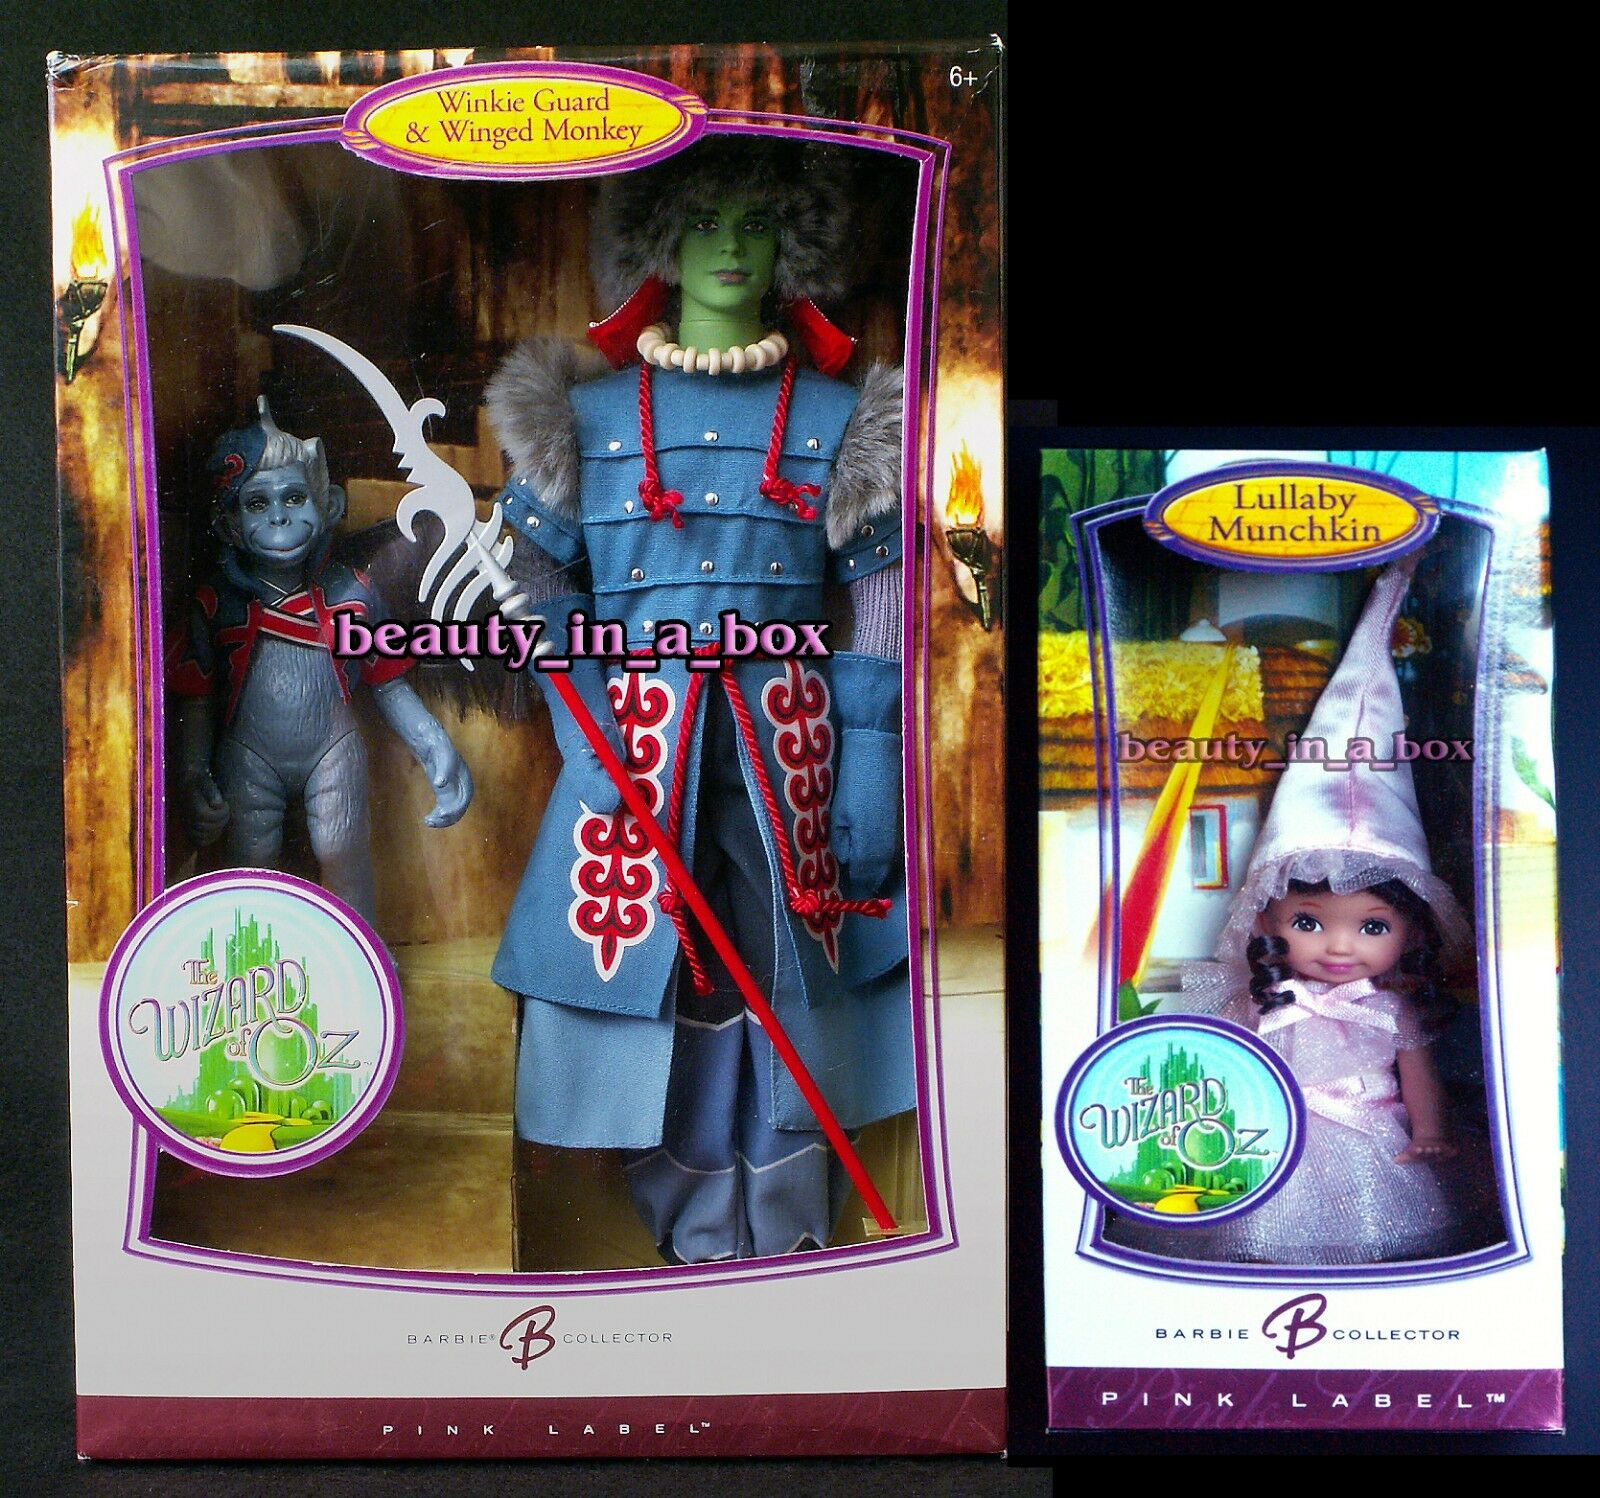 Mago De Oz Winged Monkey Muñeca de guardia Winkie LULLABY MUNCHKIN Kelly Barbie Lote 2